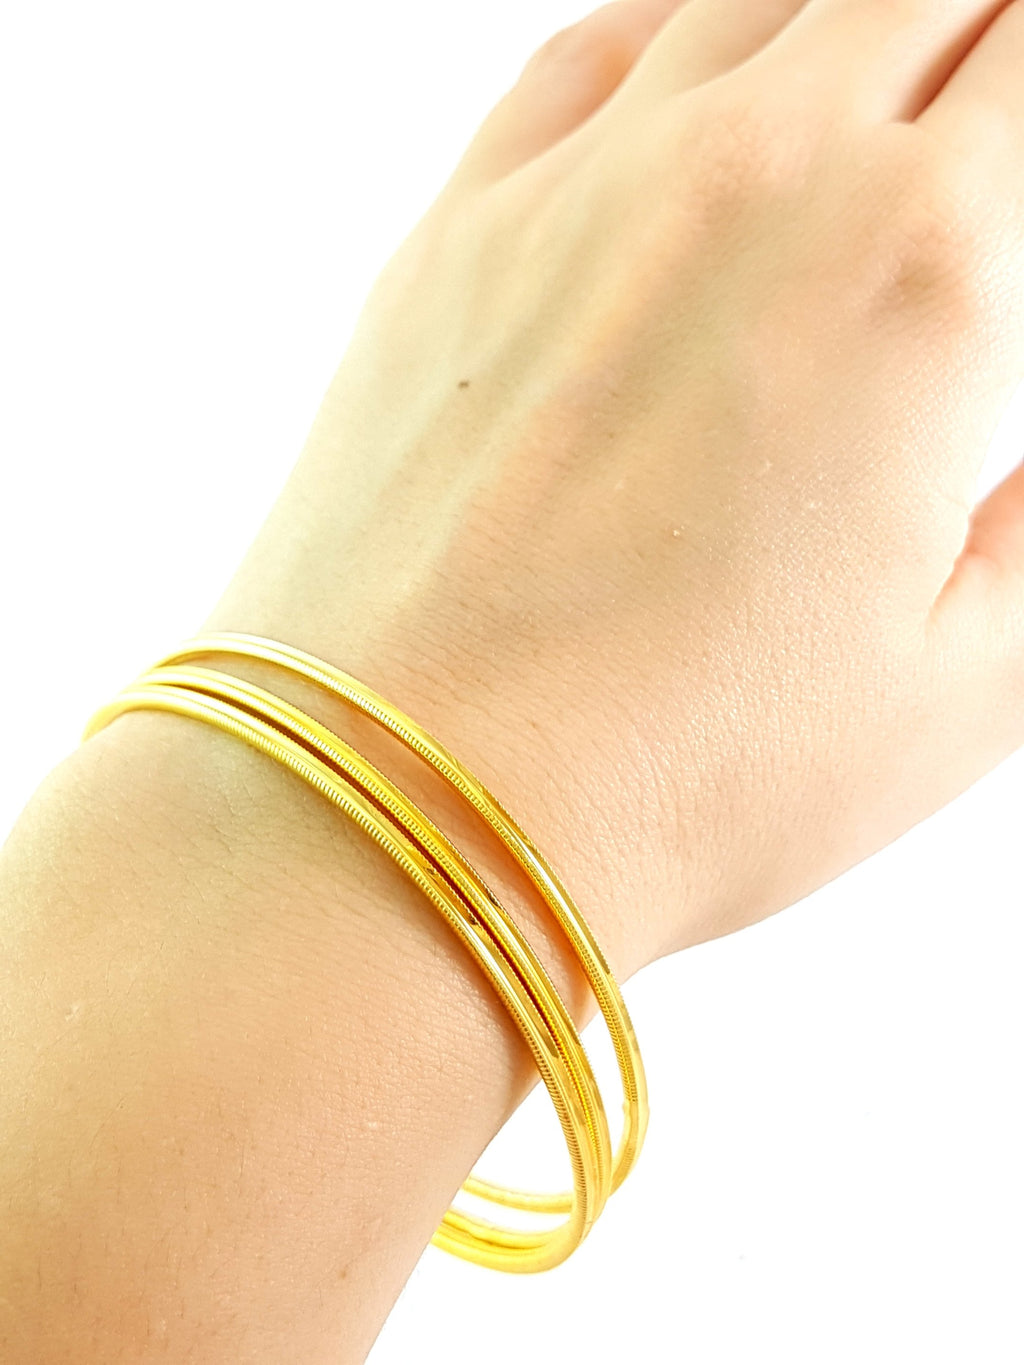 22k Gold Plated Stackable Burma Twisted Bilezik Bangle Turkish Jewelry Dubai Turkish Wholesale Handmade 925 Sterling Silver Jewelry - Turkishsilverjewelry